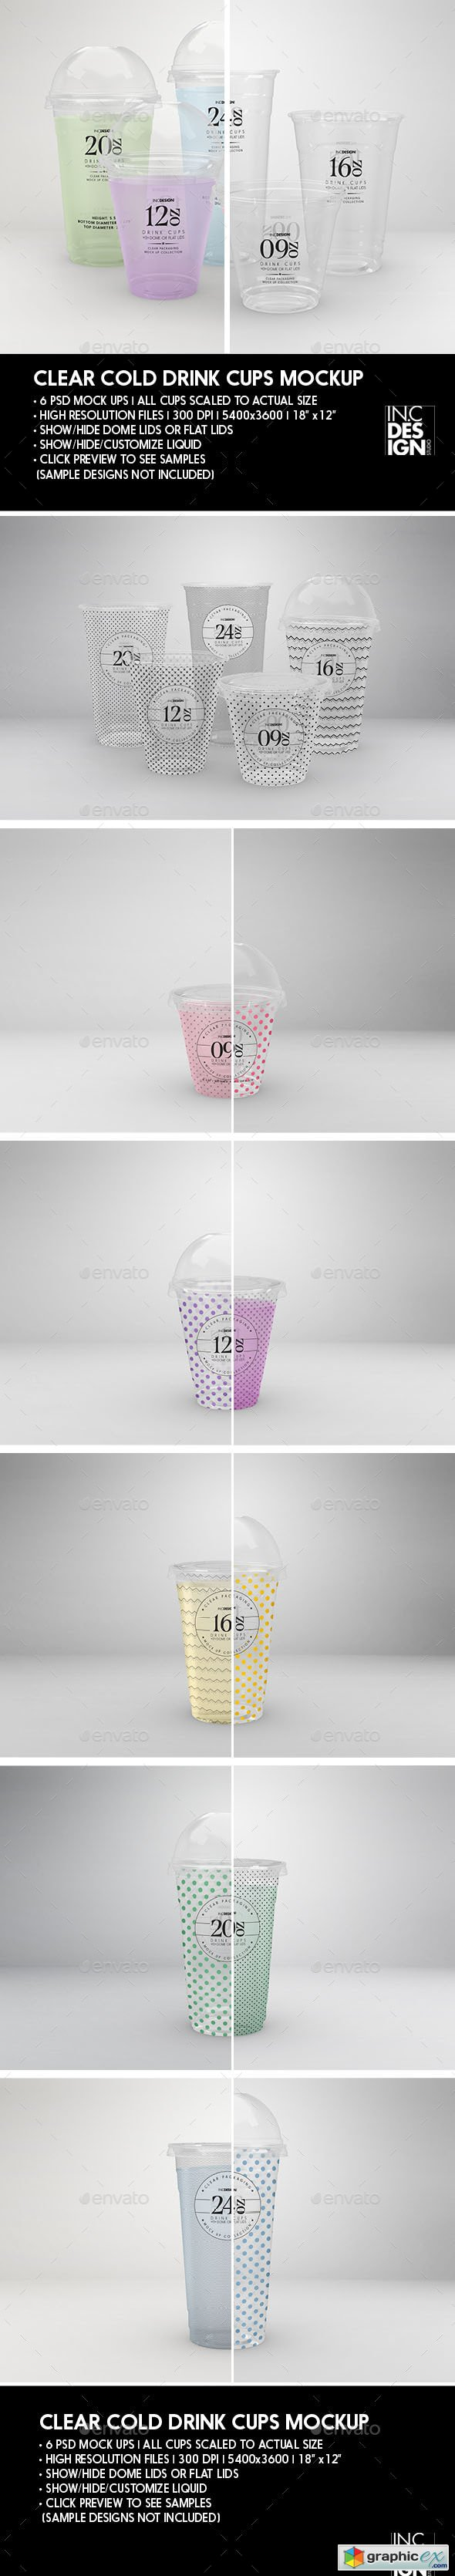 Clear Cold Drink Cups Packaging Mock Up